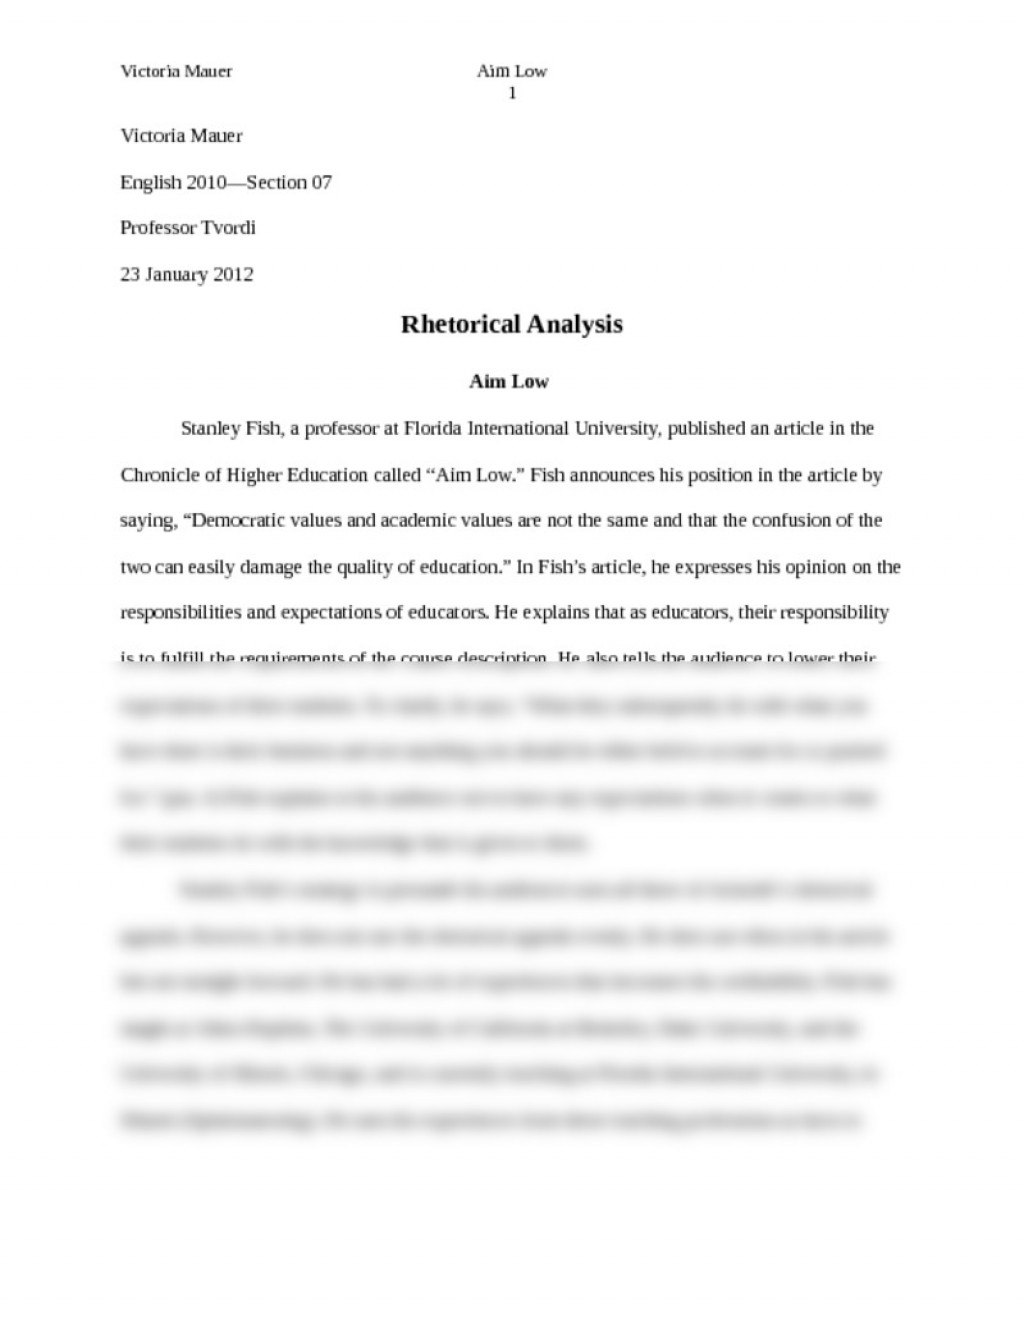 010 Rethorical Essay Example Rhetorical Analysis For College How To Write Outline Pre On An Image Advertisement Sat Conclusion Ap Awful Strategies Topics 2018 Large